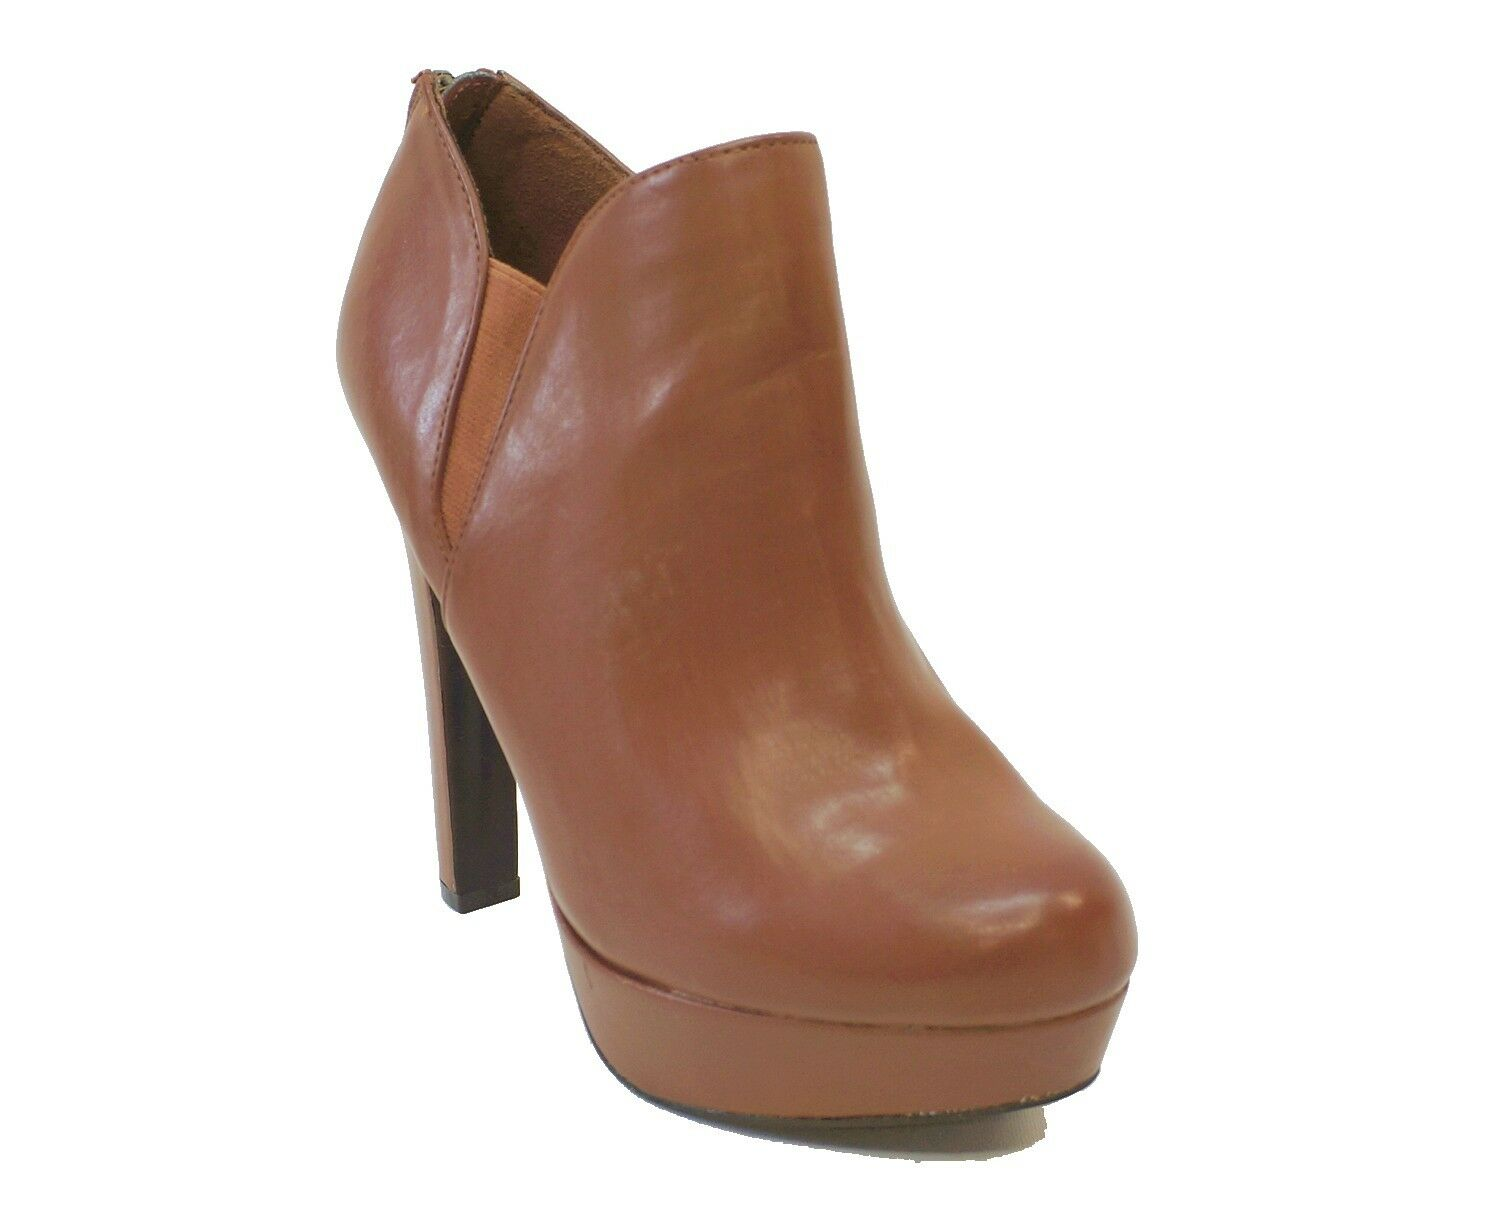 Material Girl Brown Ankle Boots ROSS Booties Women's shoes US 7